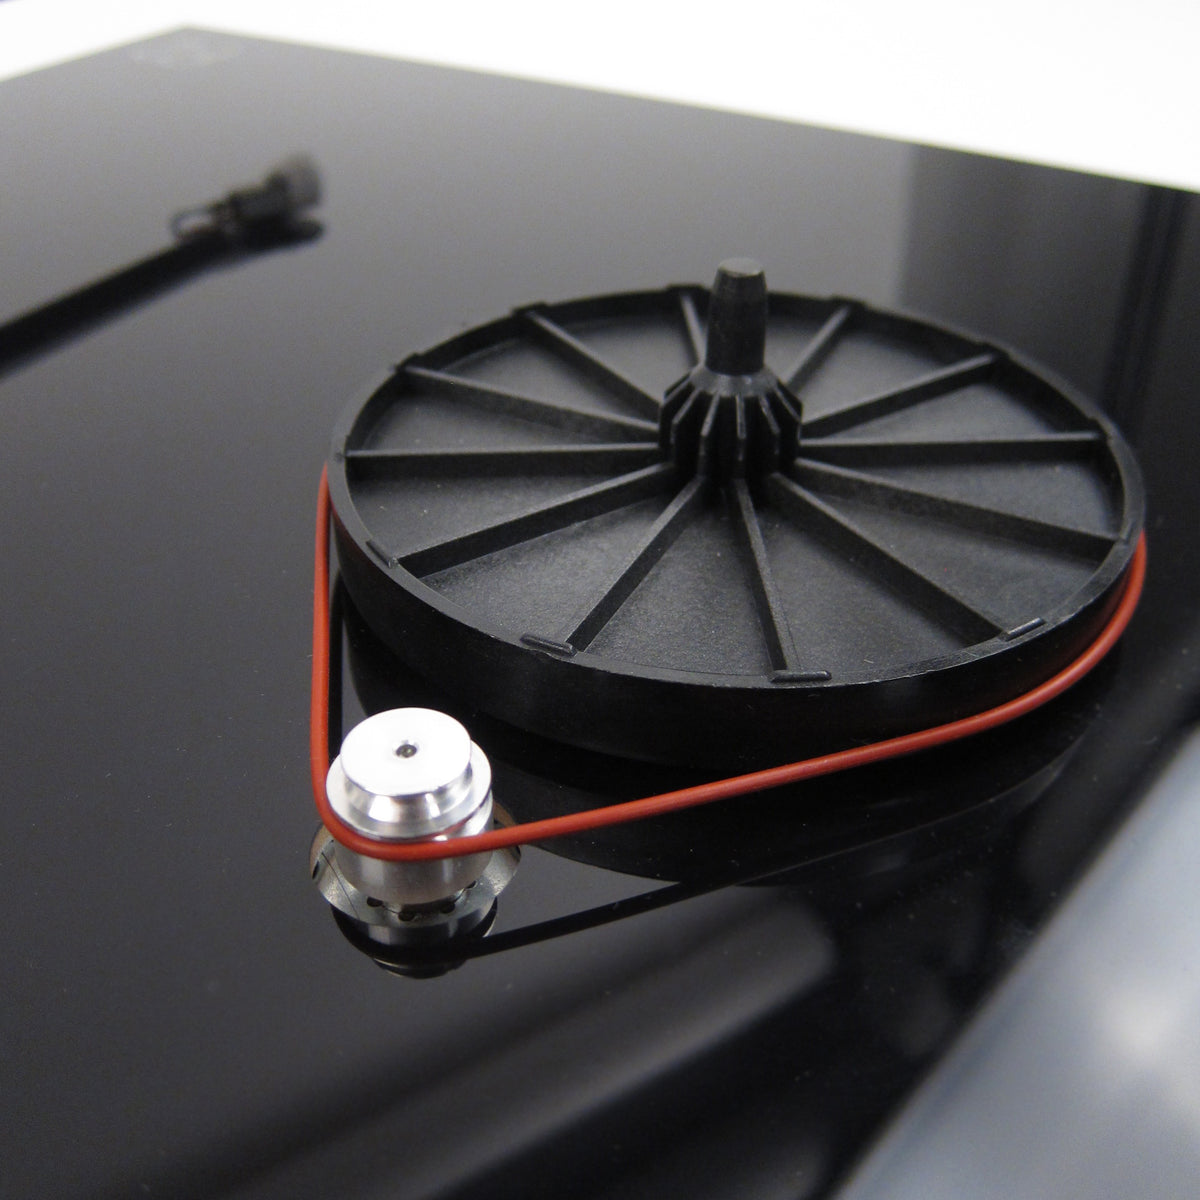 Rega: Little Red Thing Silicone Turntable Belt Upgrade by ISOkinetik